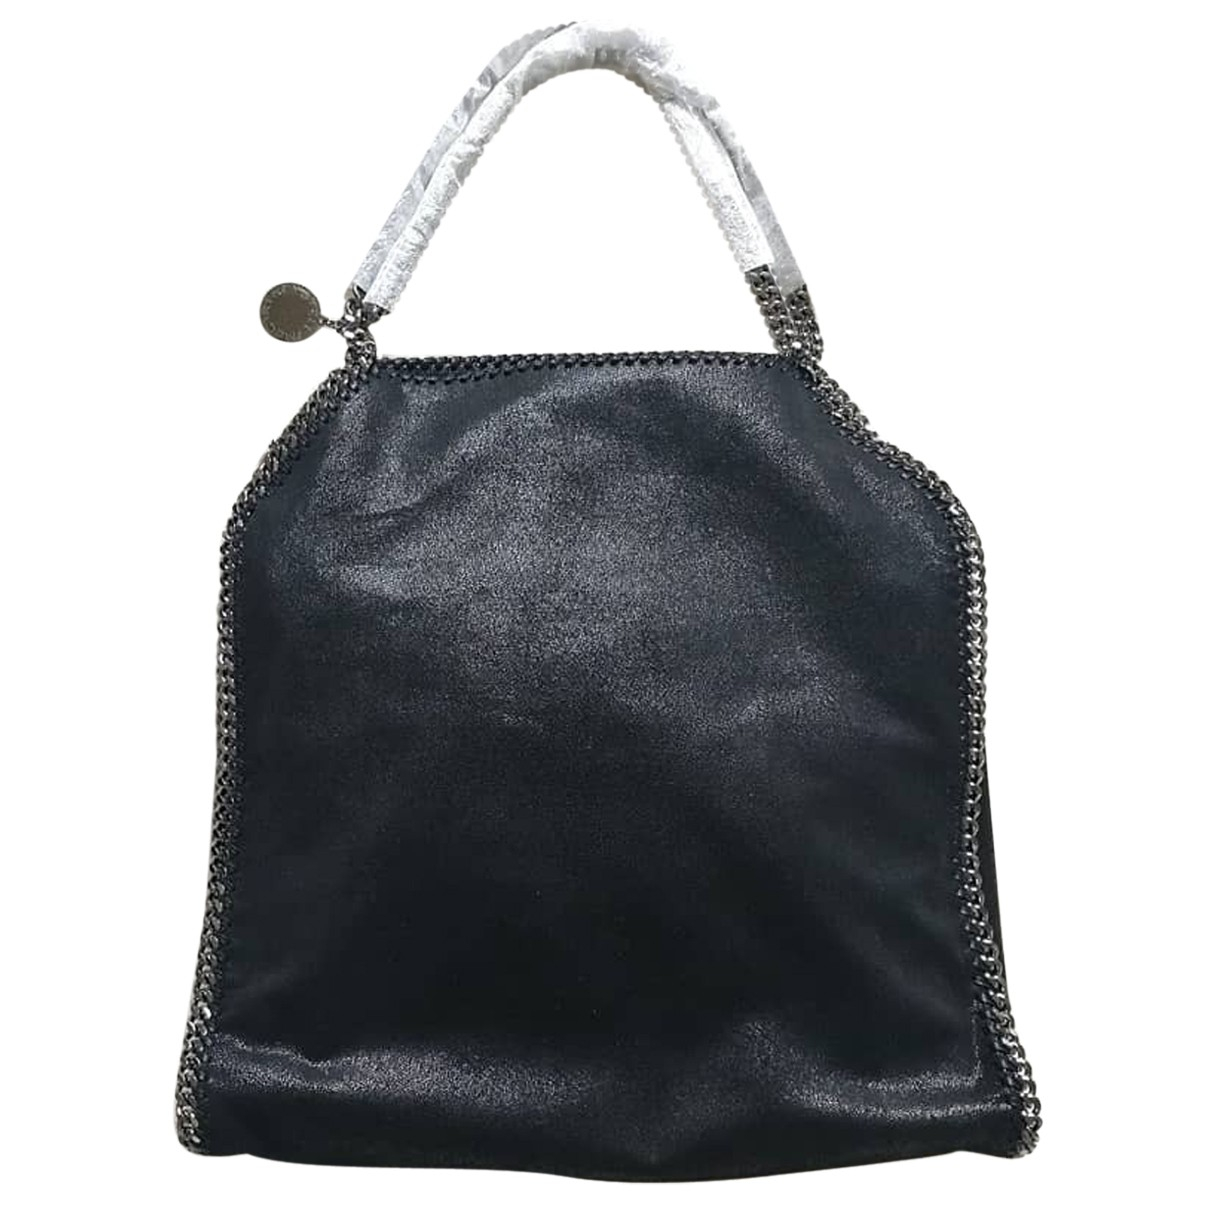 Stella Mccartney Falabella Handtasche in  Schwarz Synthetik